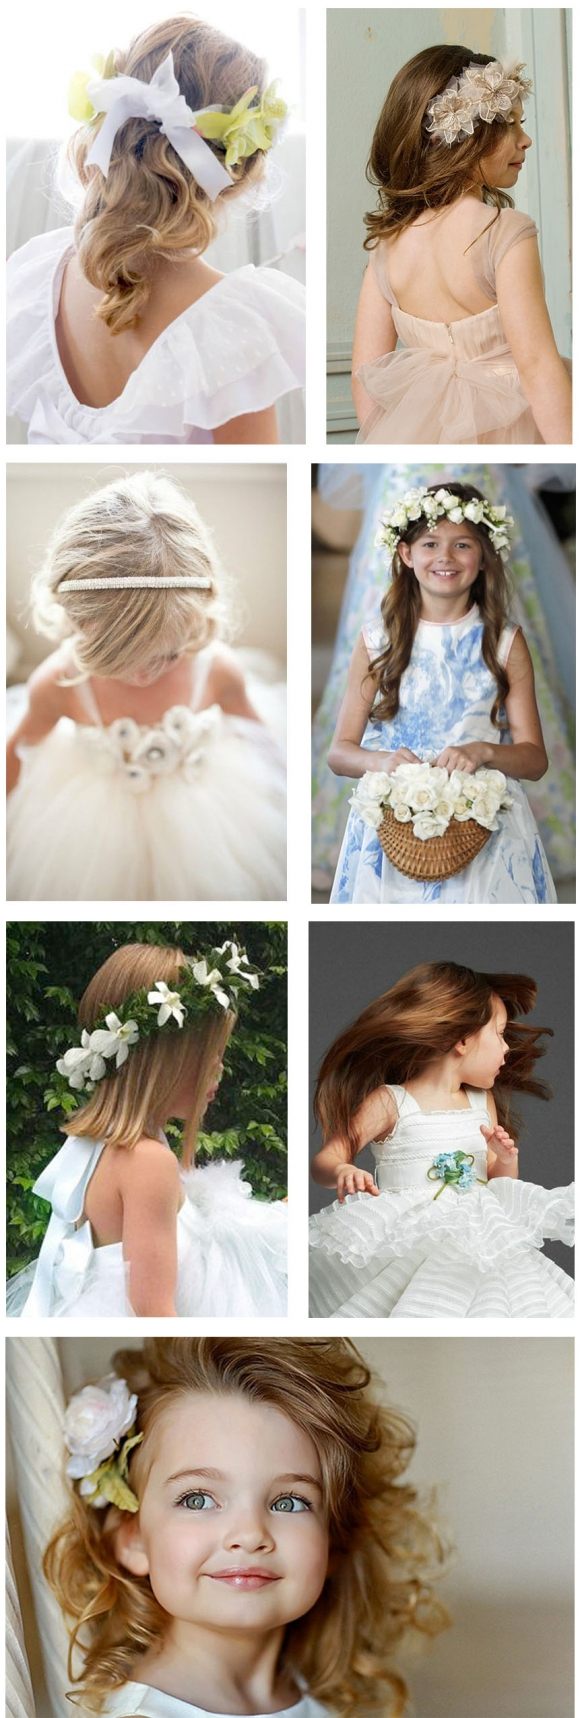 1_flower_wedding_kids_longHair.jpg